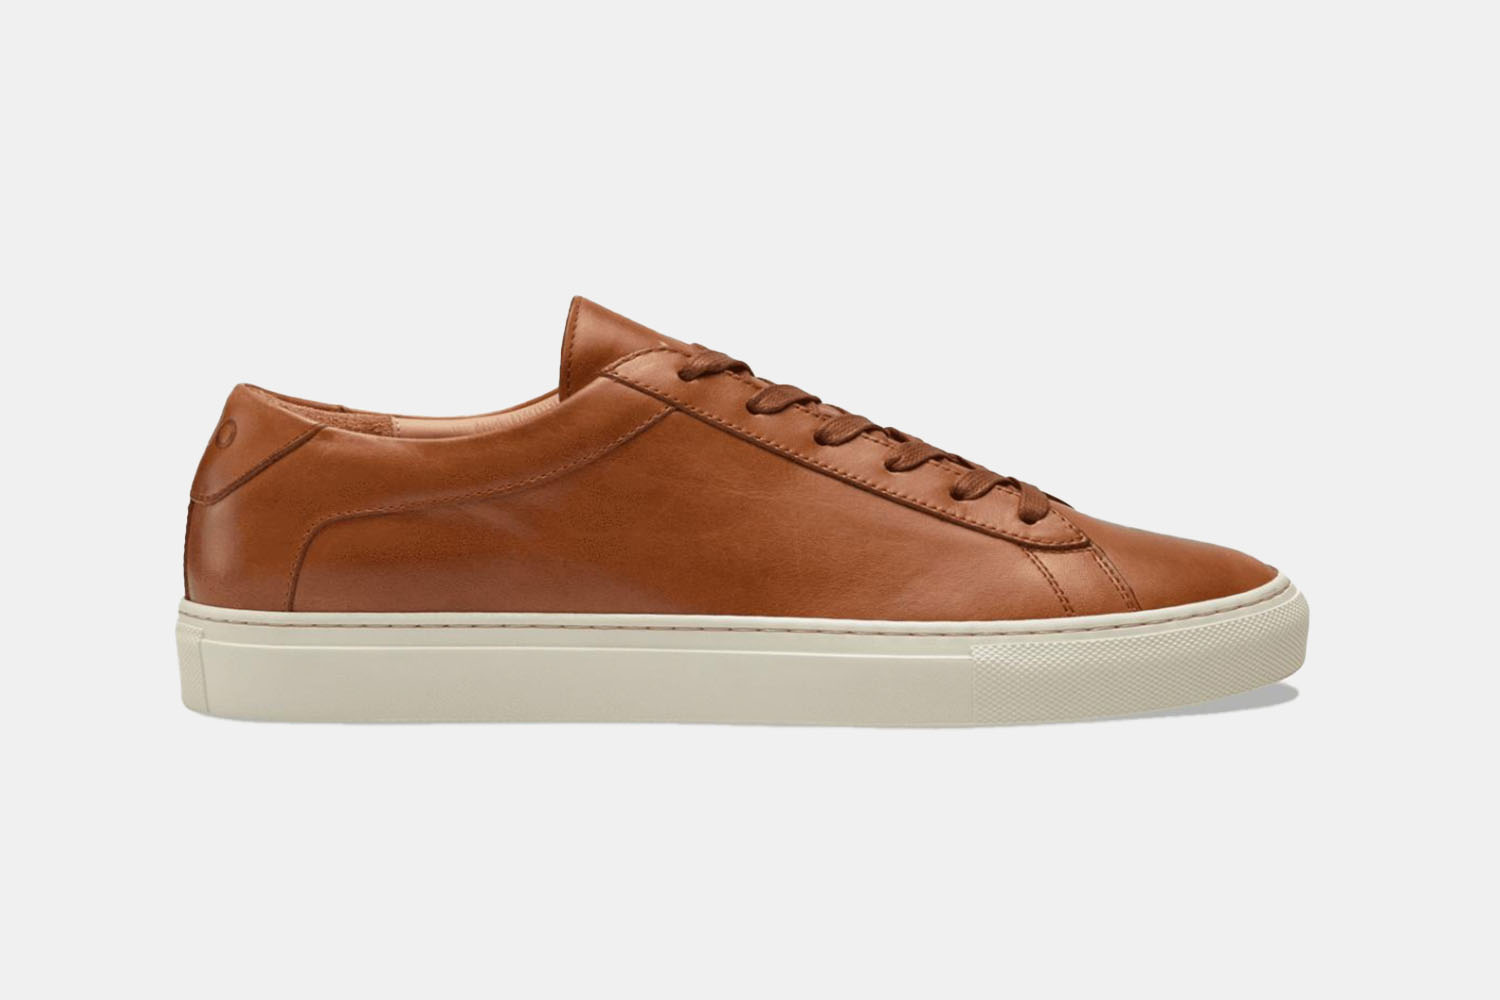 A handsome brown leather sneaker